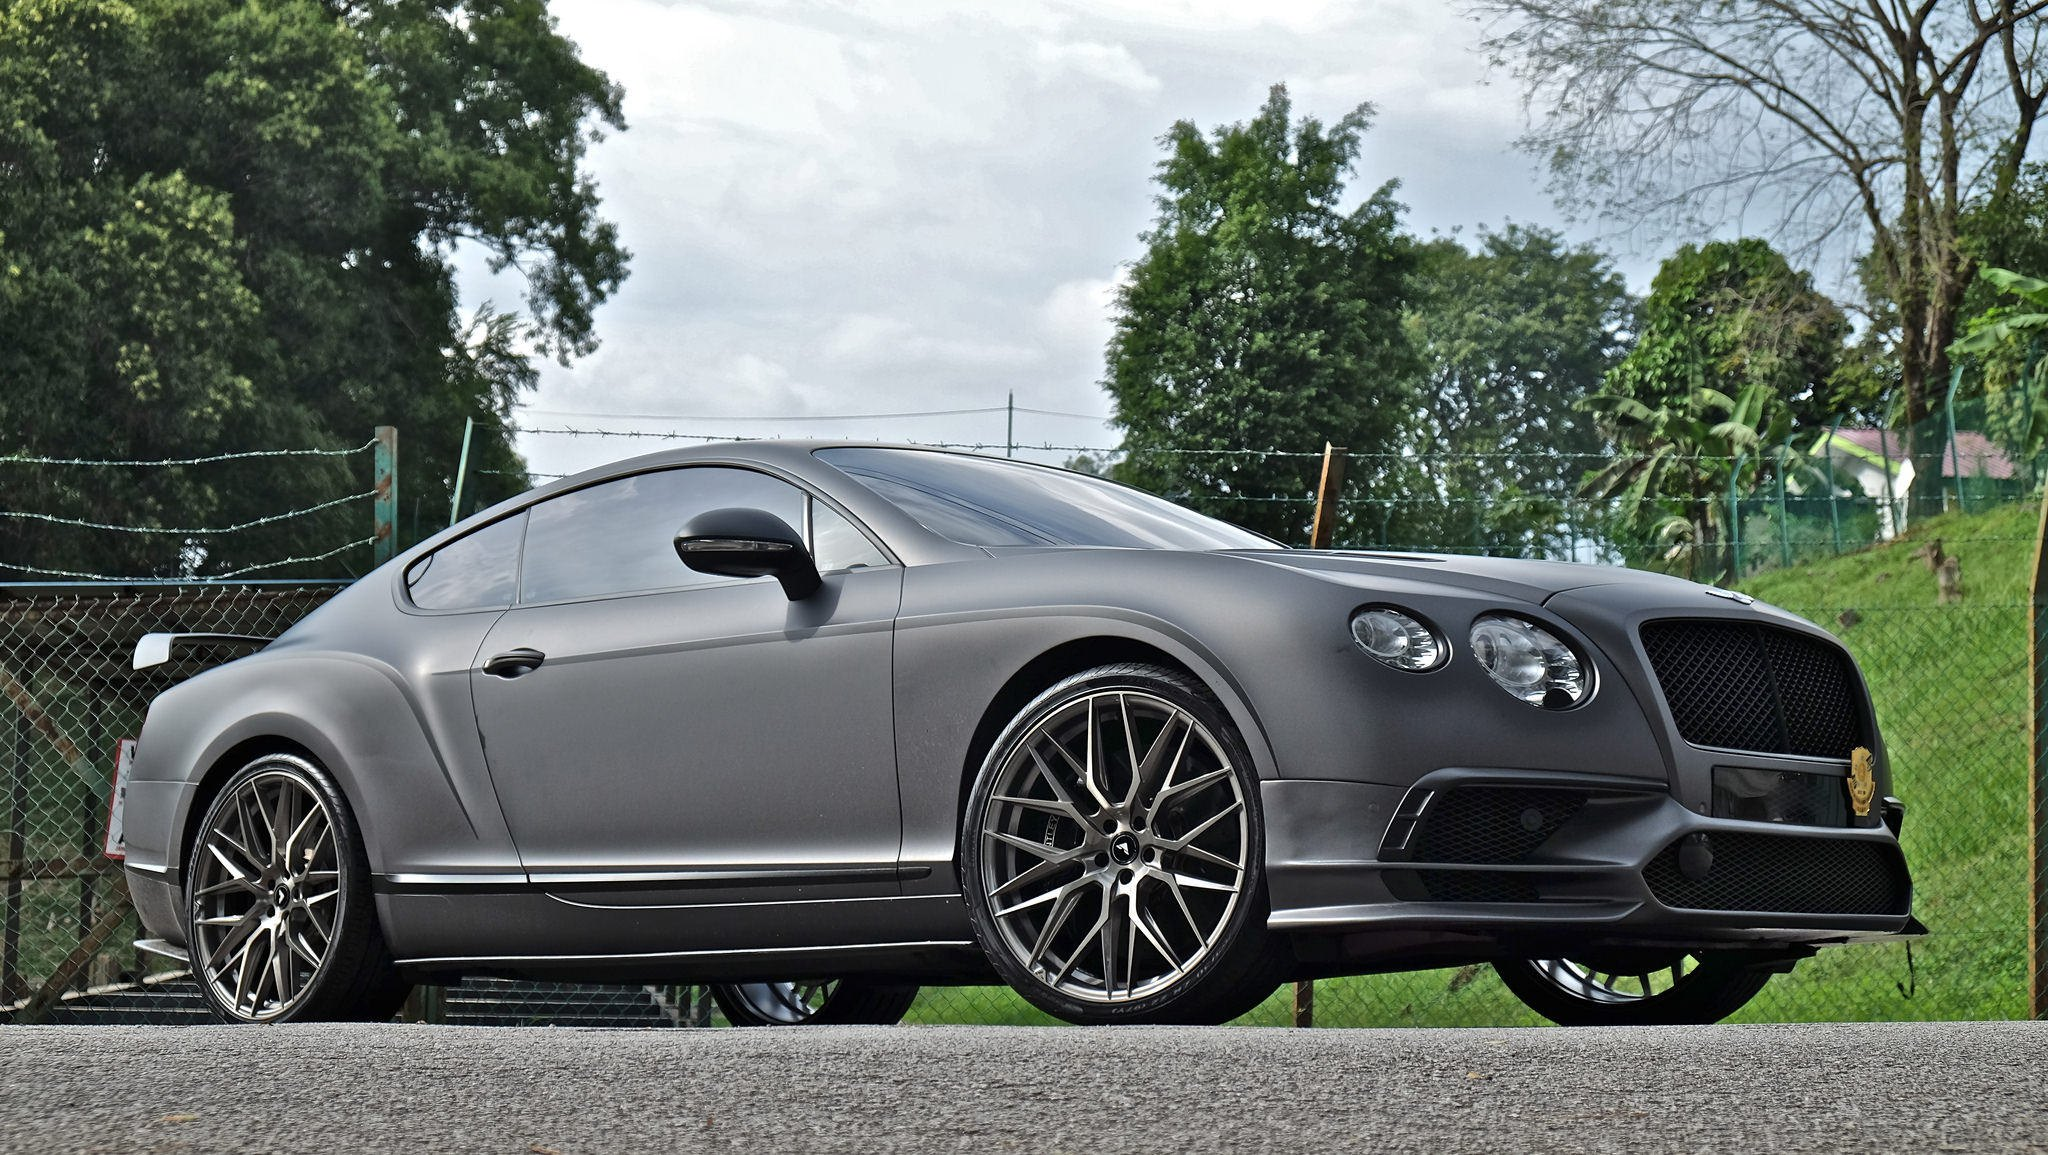 King On The Road Bespoke Gray Matte Bentley Continental Carid Com Gallery